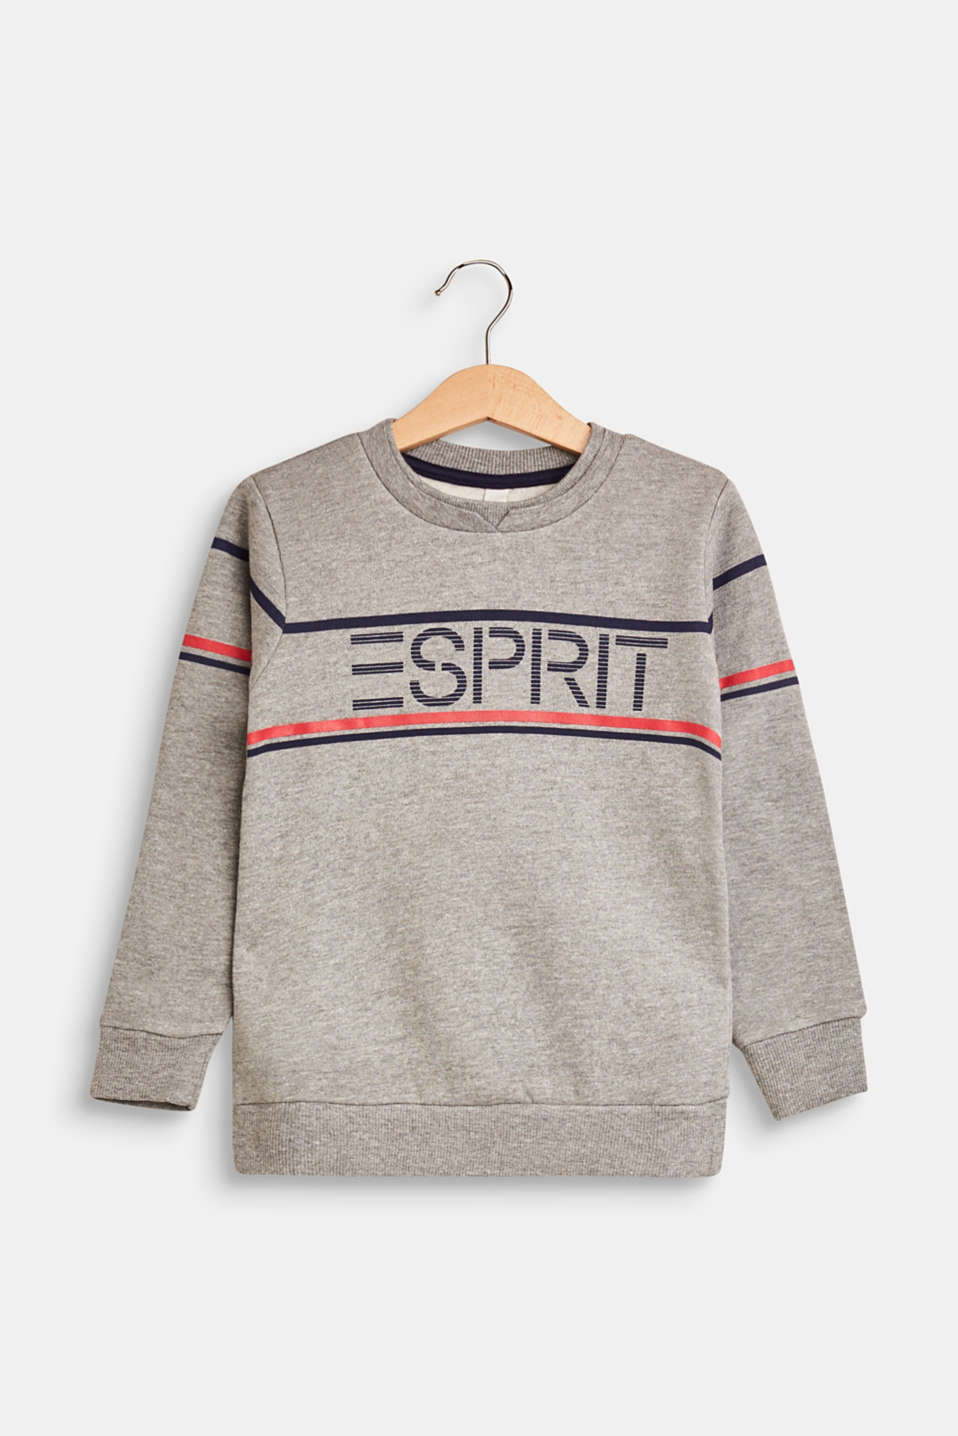 Esprit - Cotton blend sweatshirt with printed logo